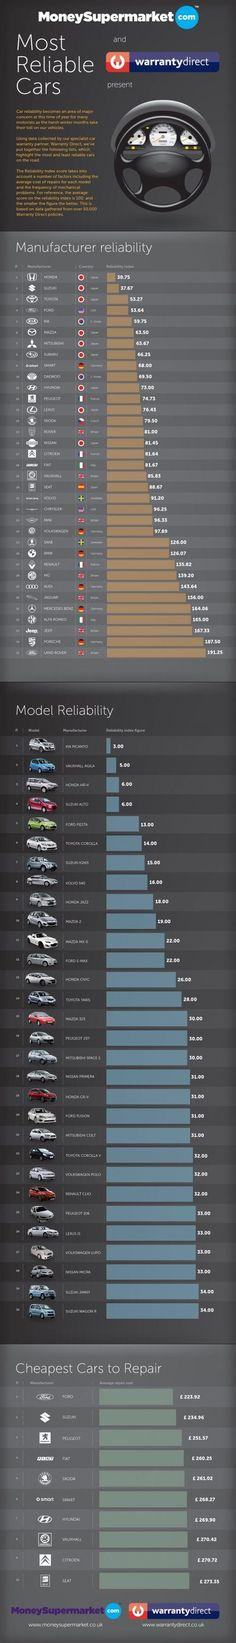 Most Reliable Cars infographic: